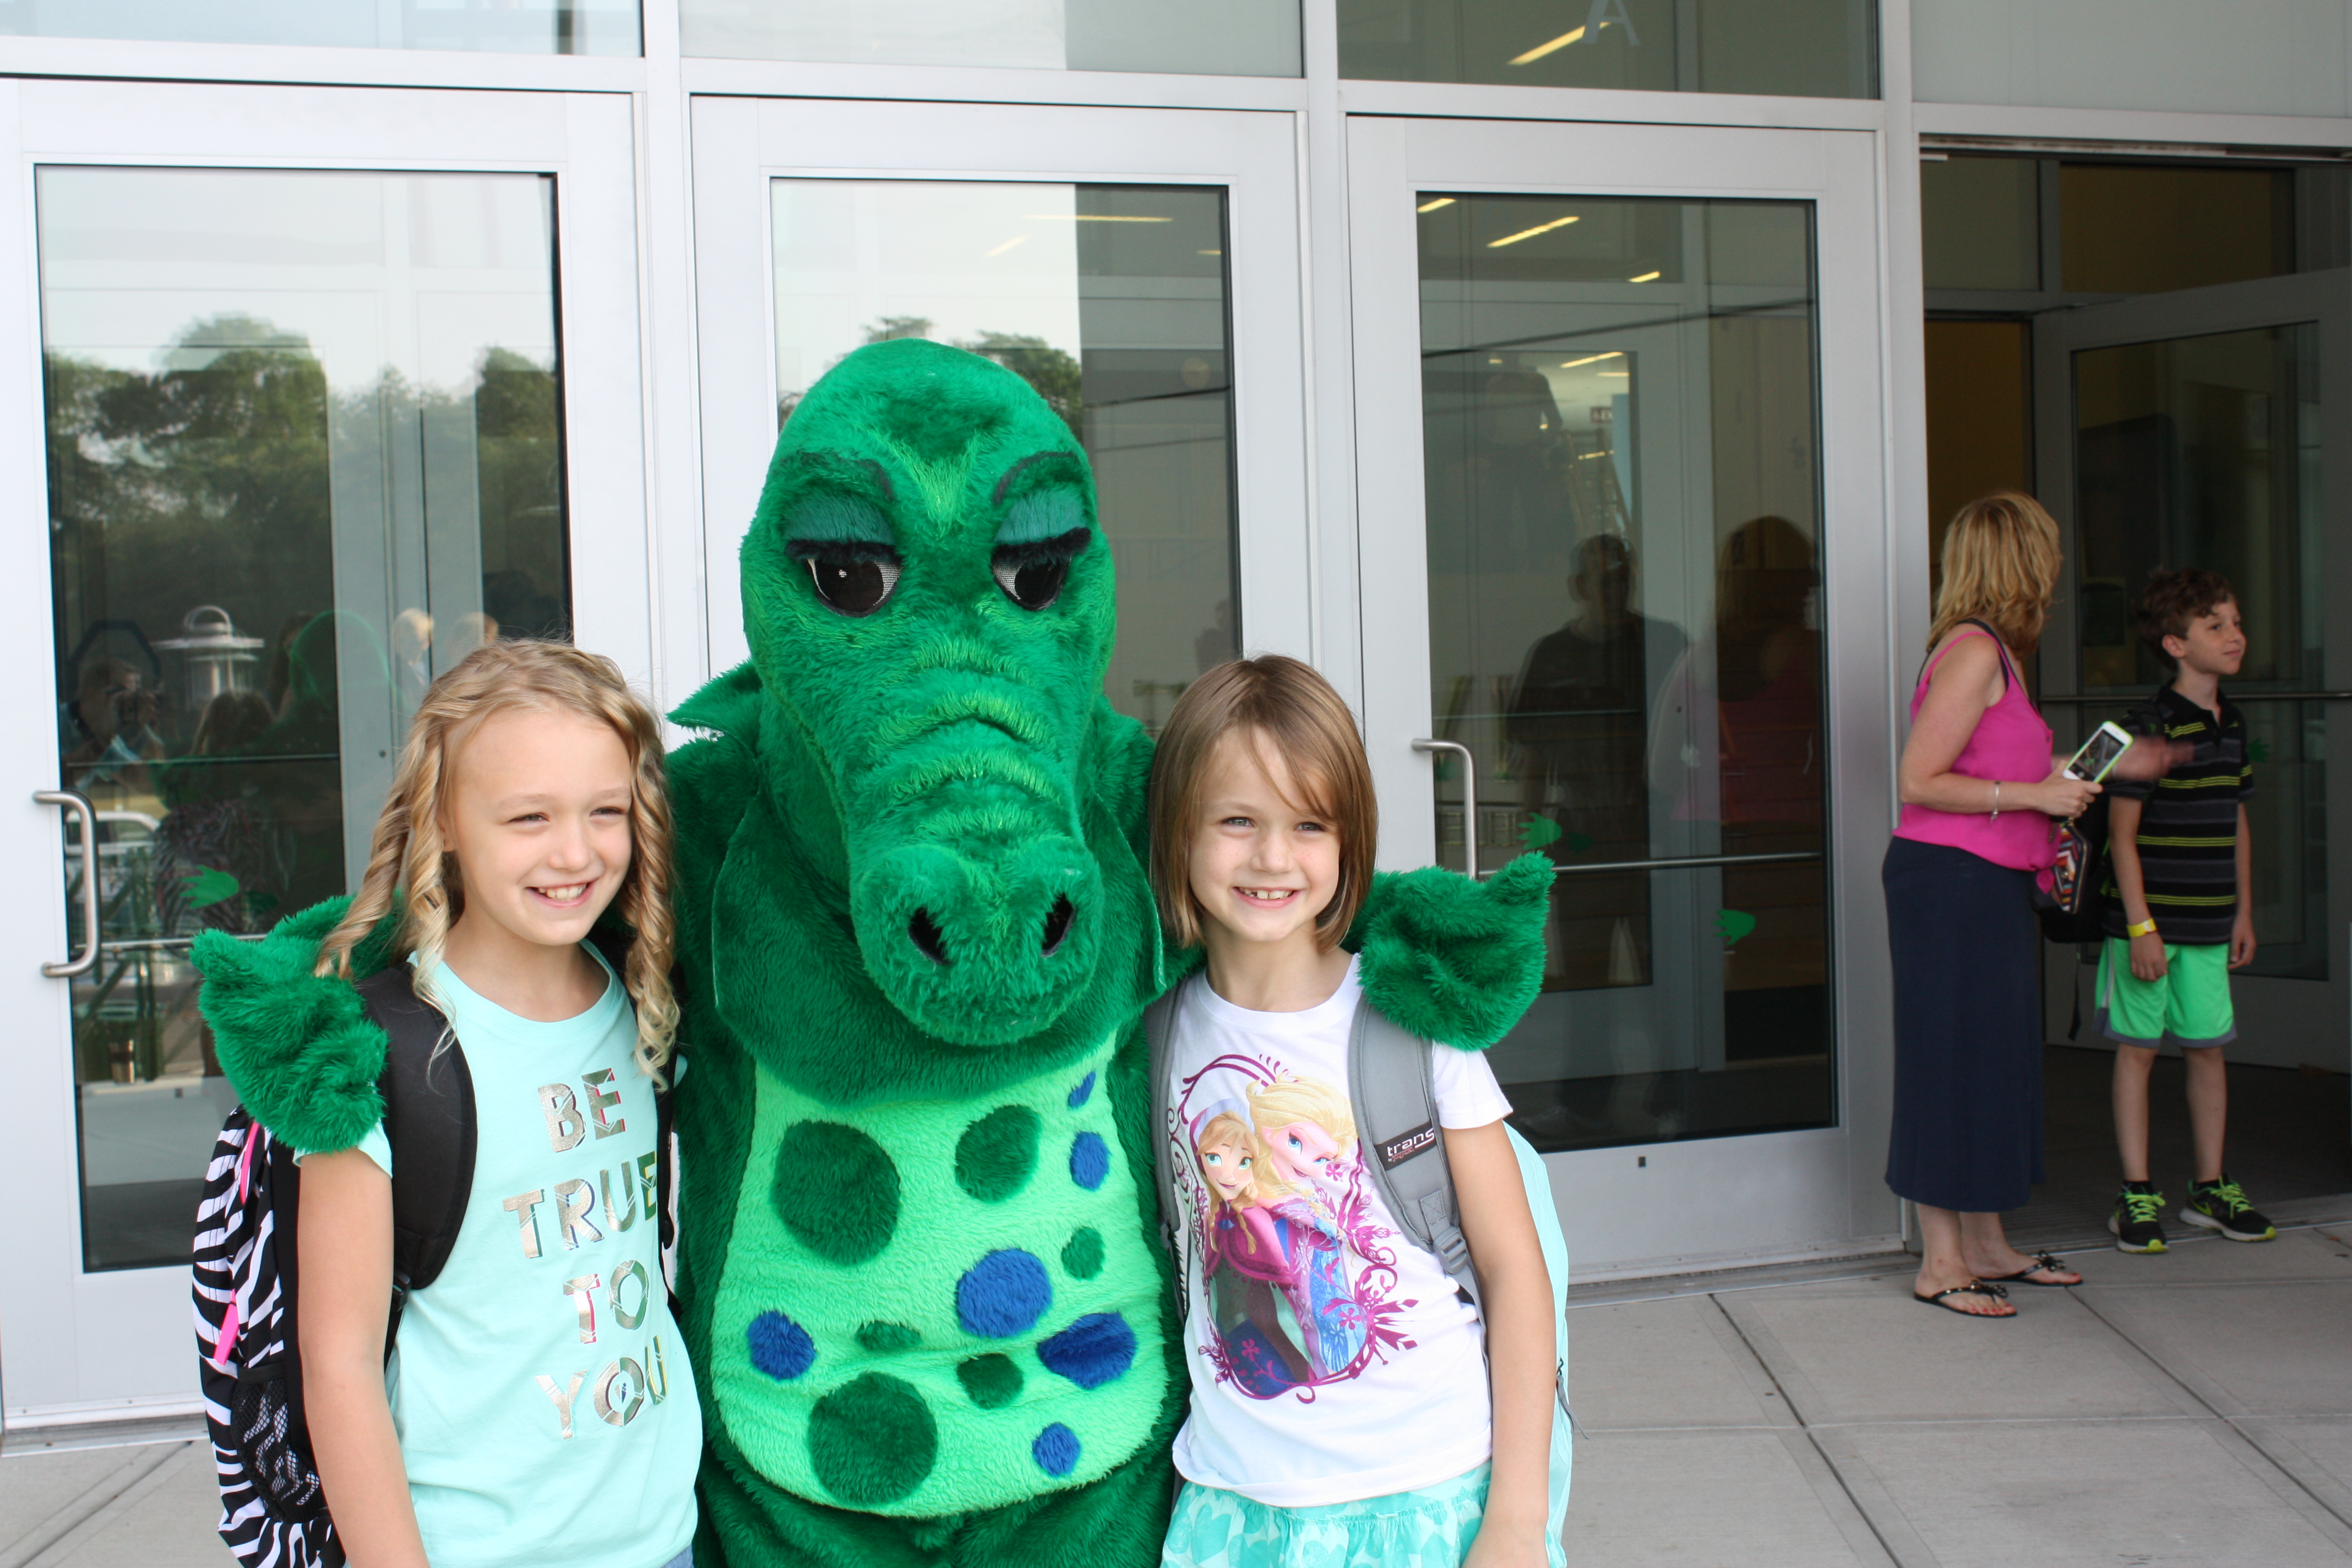 Snappy, the school mascot, with students